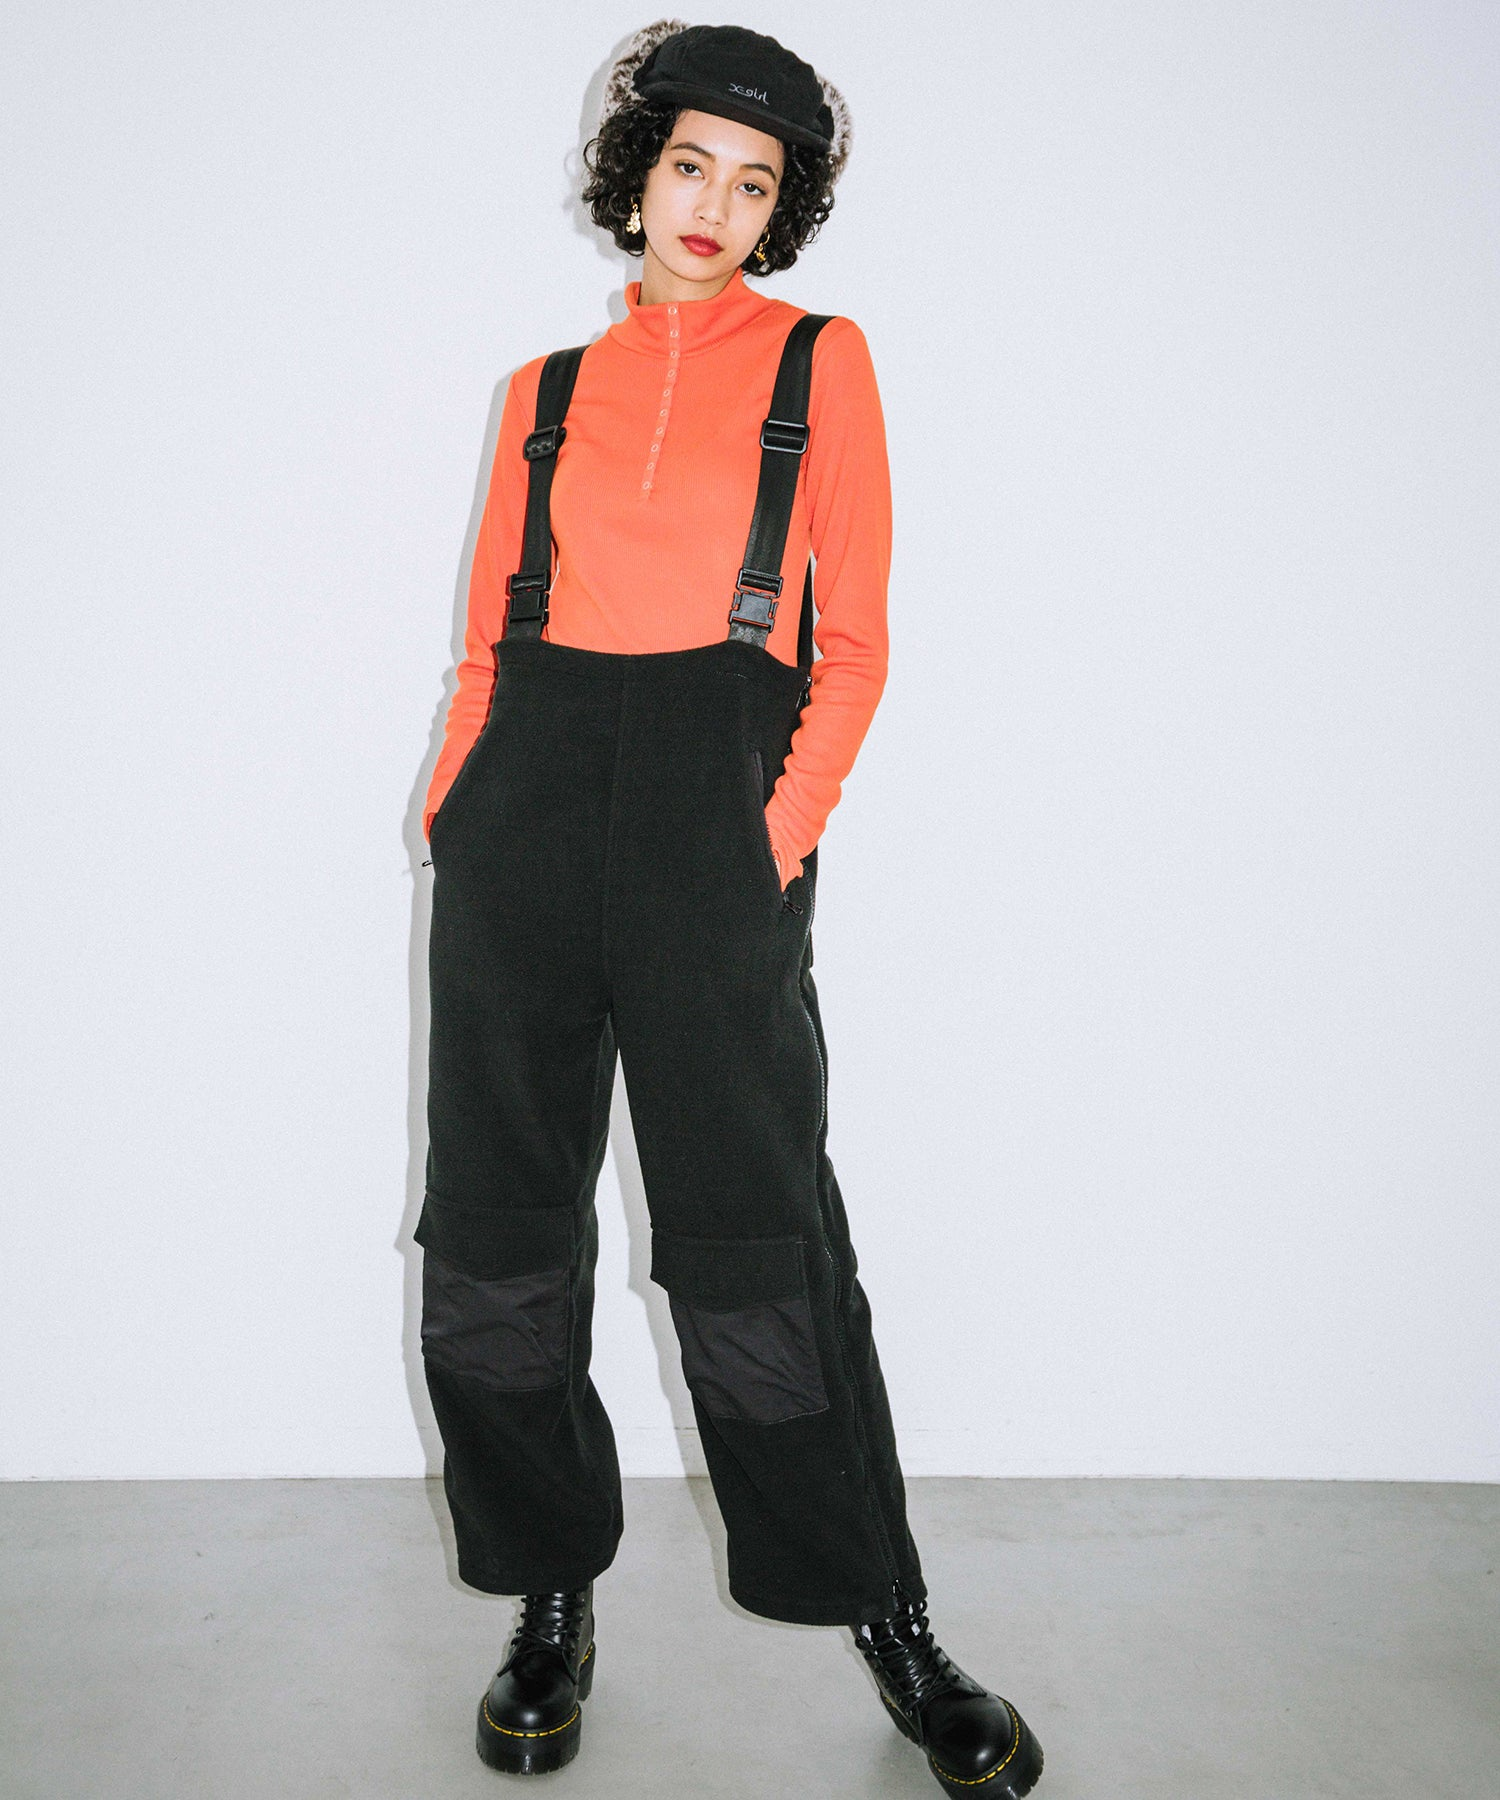 FLEECE OVERALL, PANTS, X-Girl